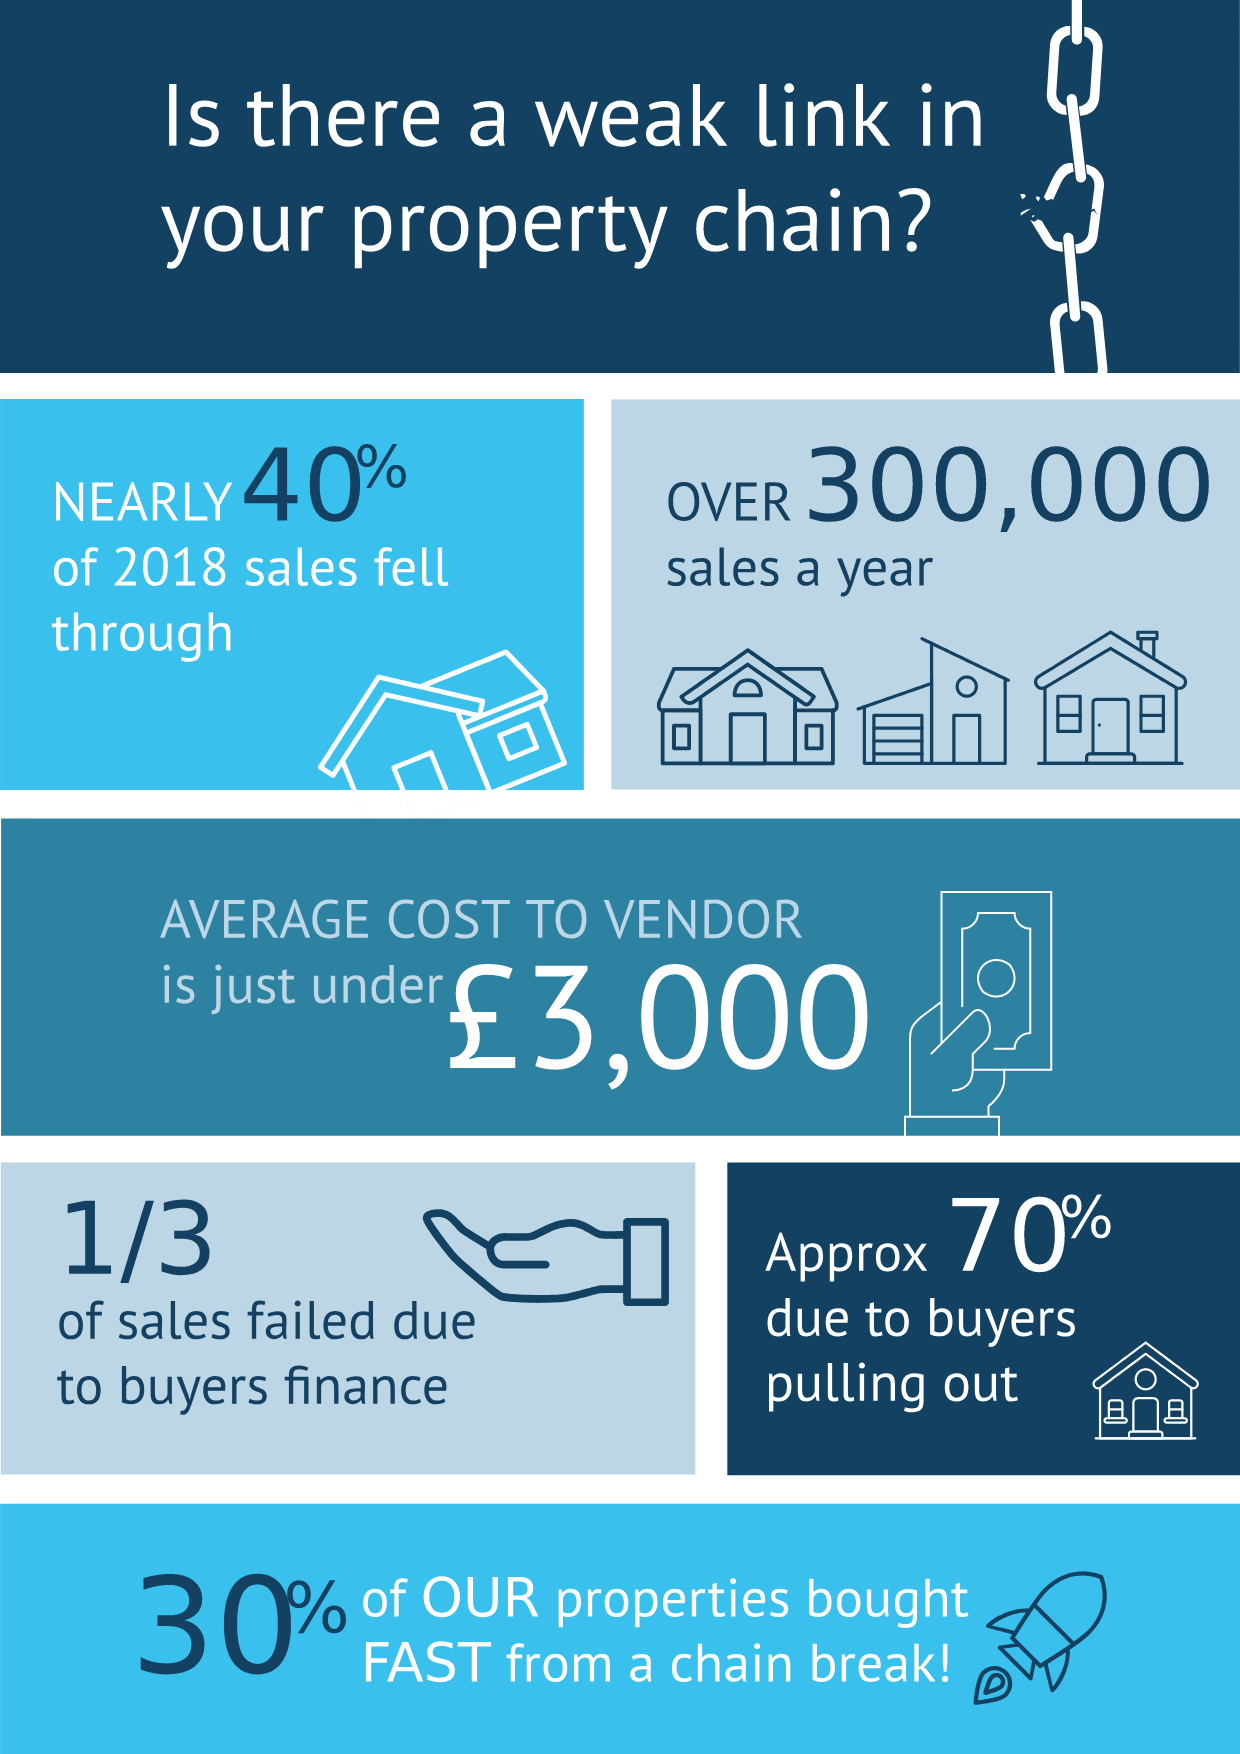 Property chain info-graphic